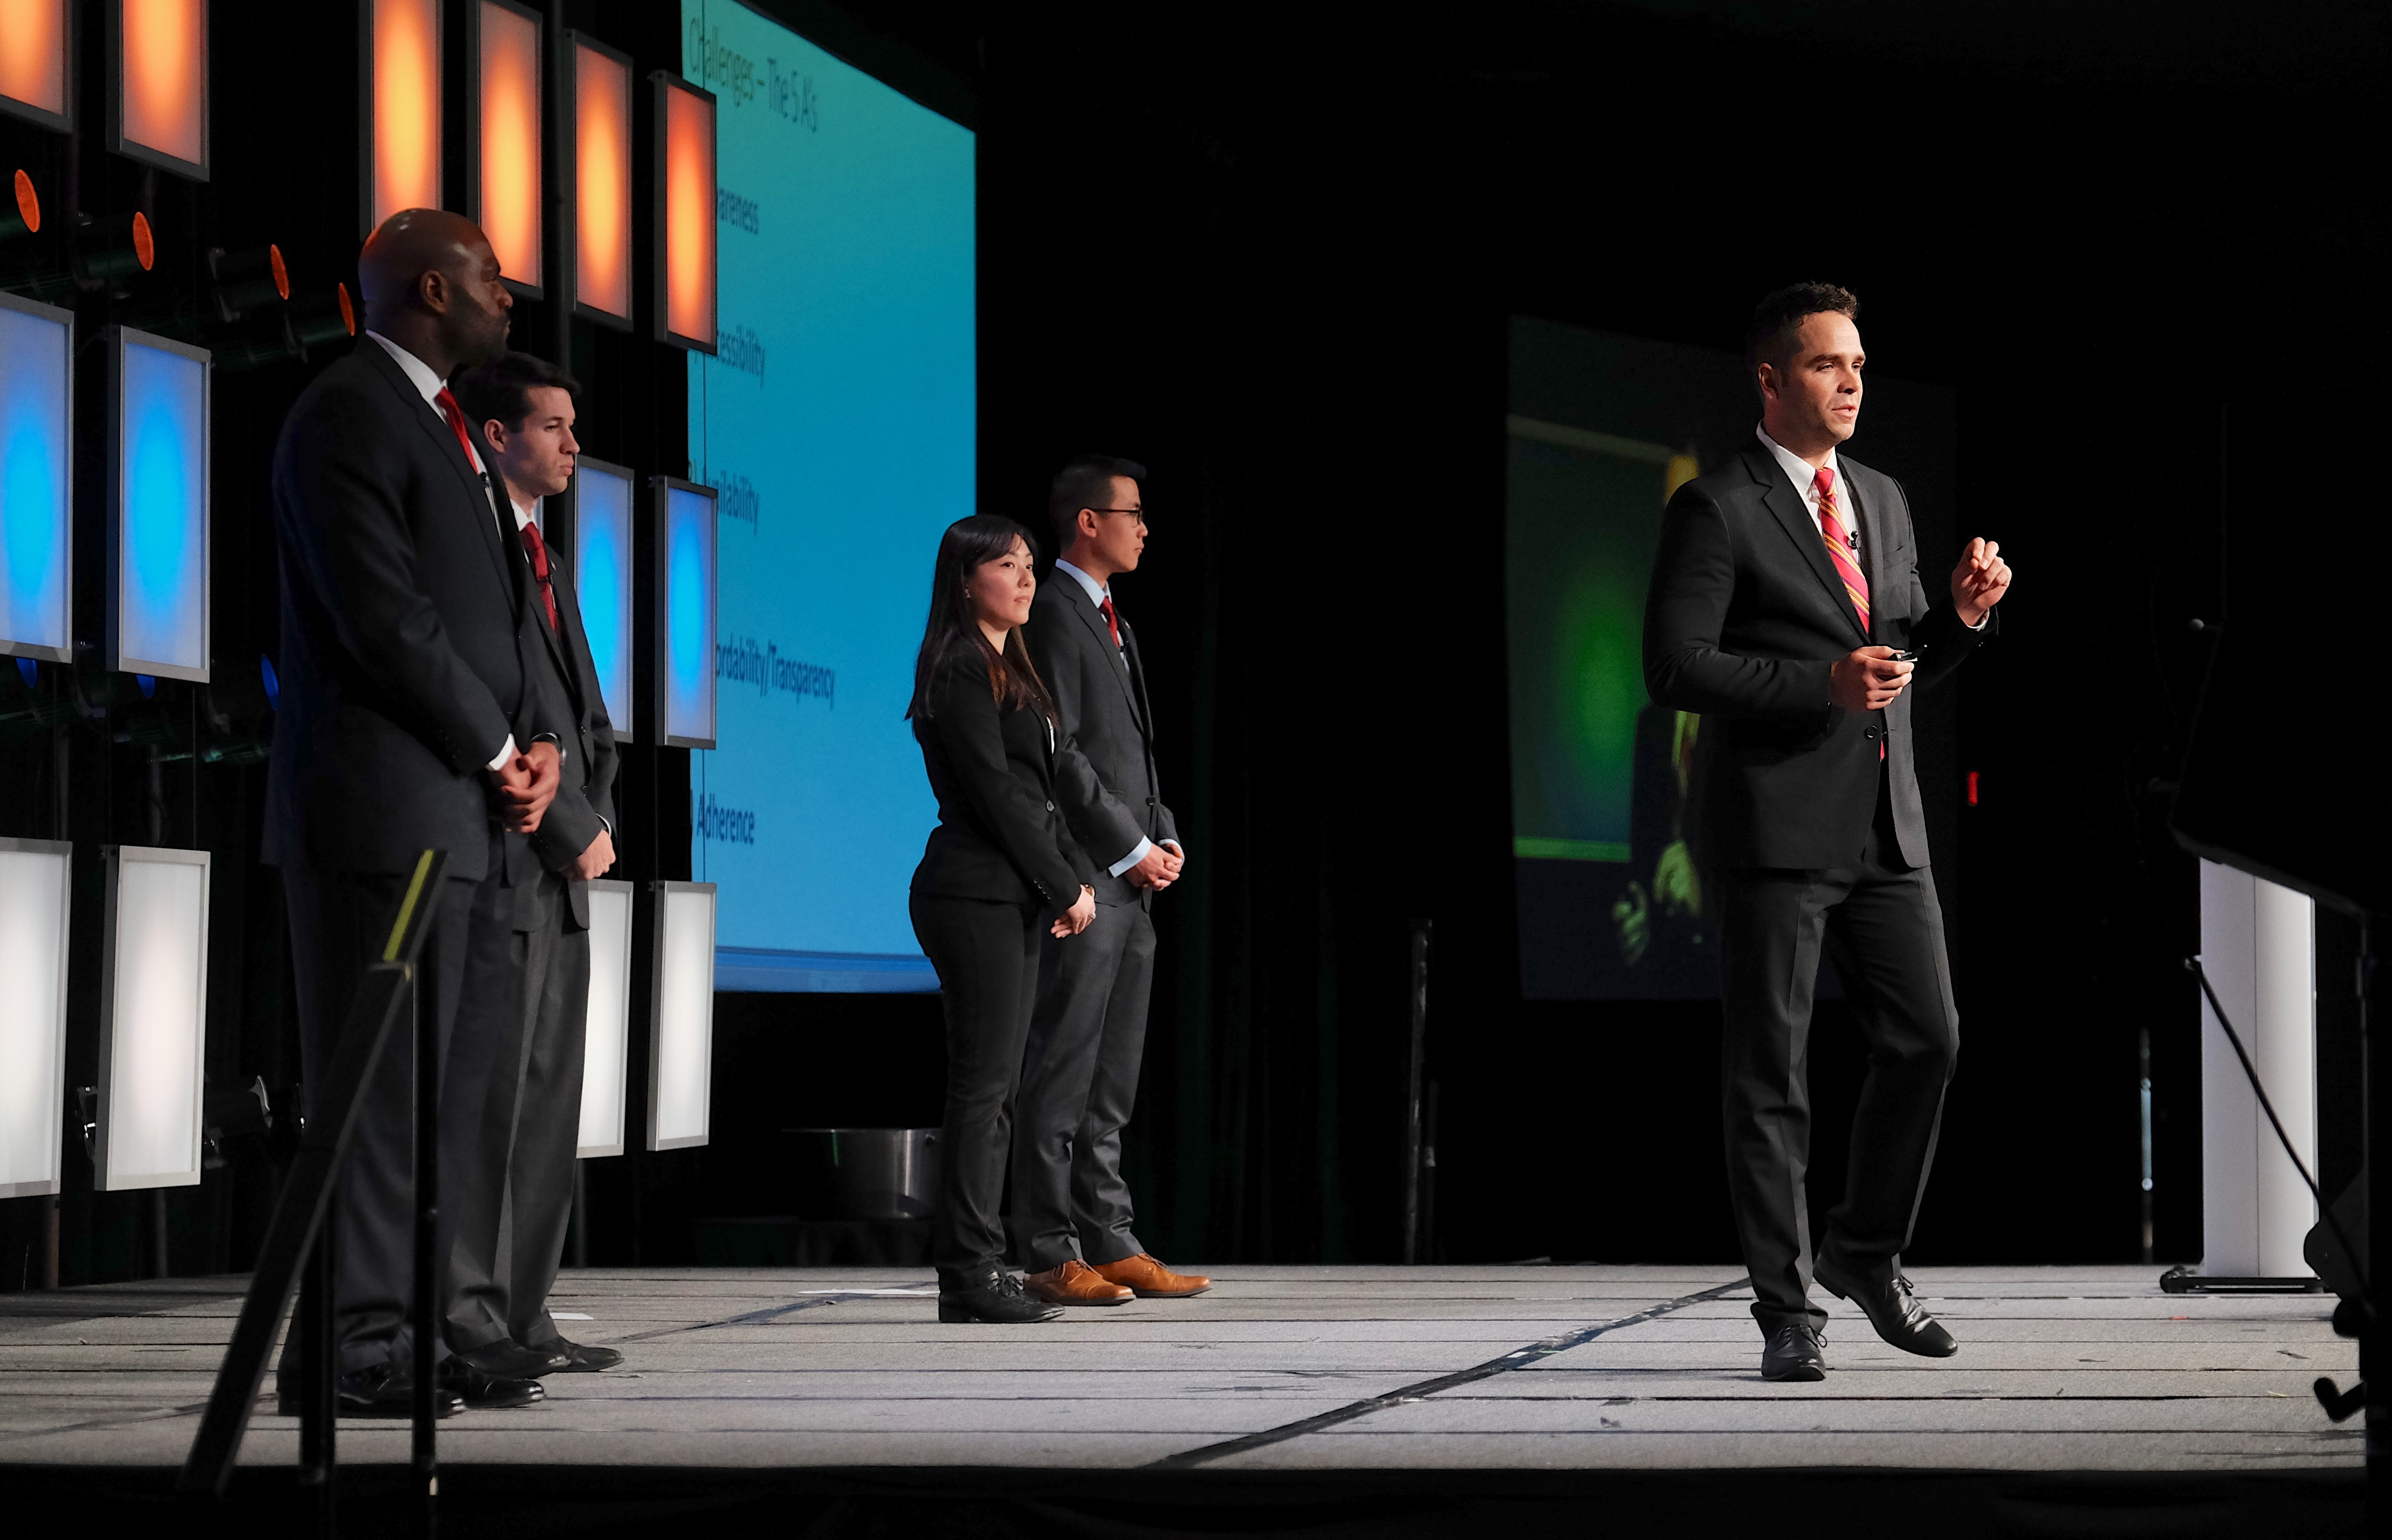 The 2016 Marketing Analytics Summit / Inmar Analytics Forum held their Keynote and Graduate Final Competititon at the Benton Convention Center in Winston-Salem.